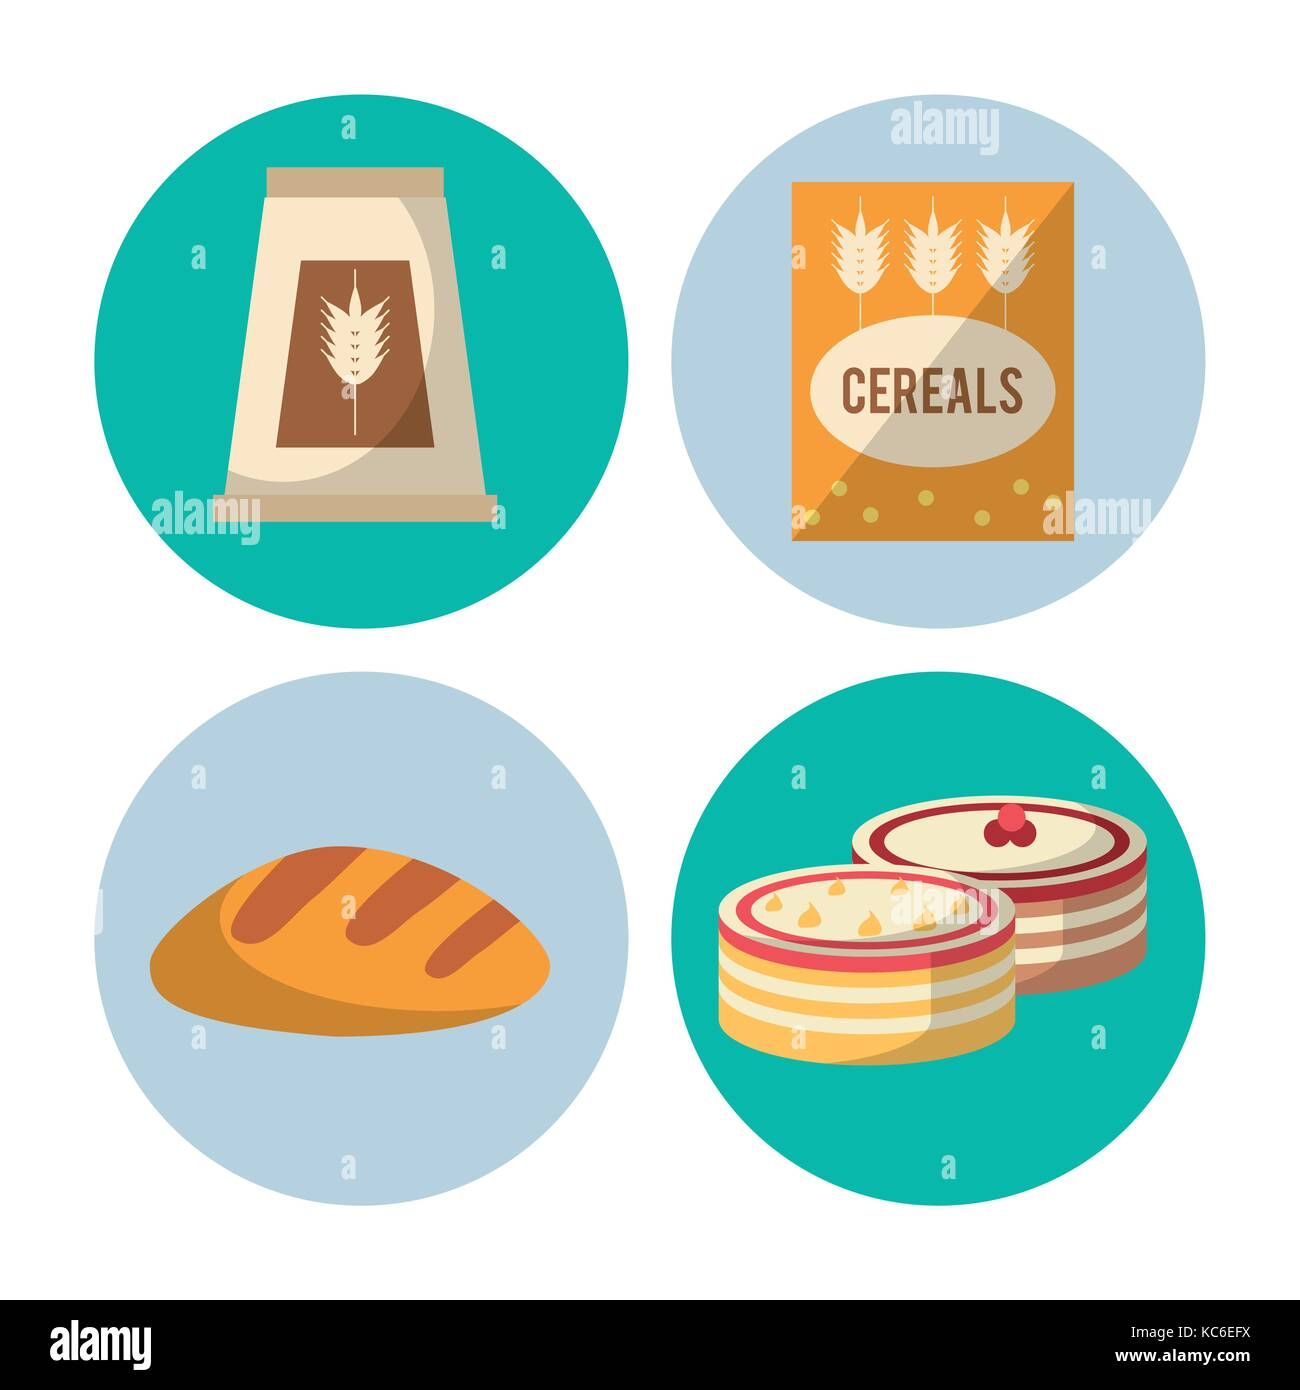 Carbohydrates food icons - Stock Image